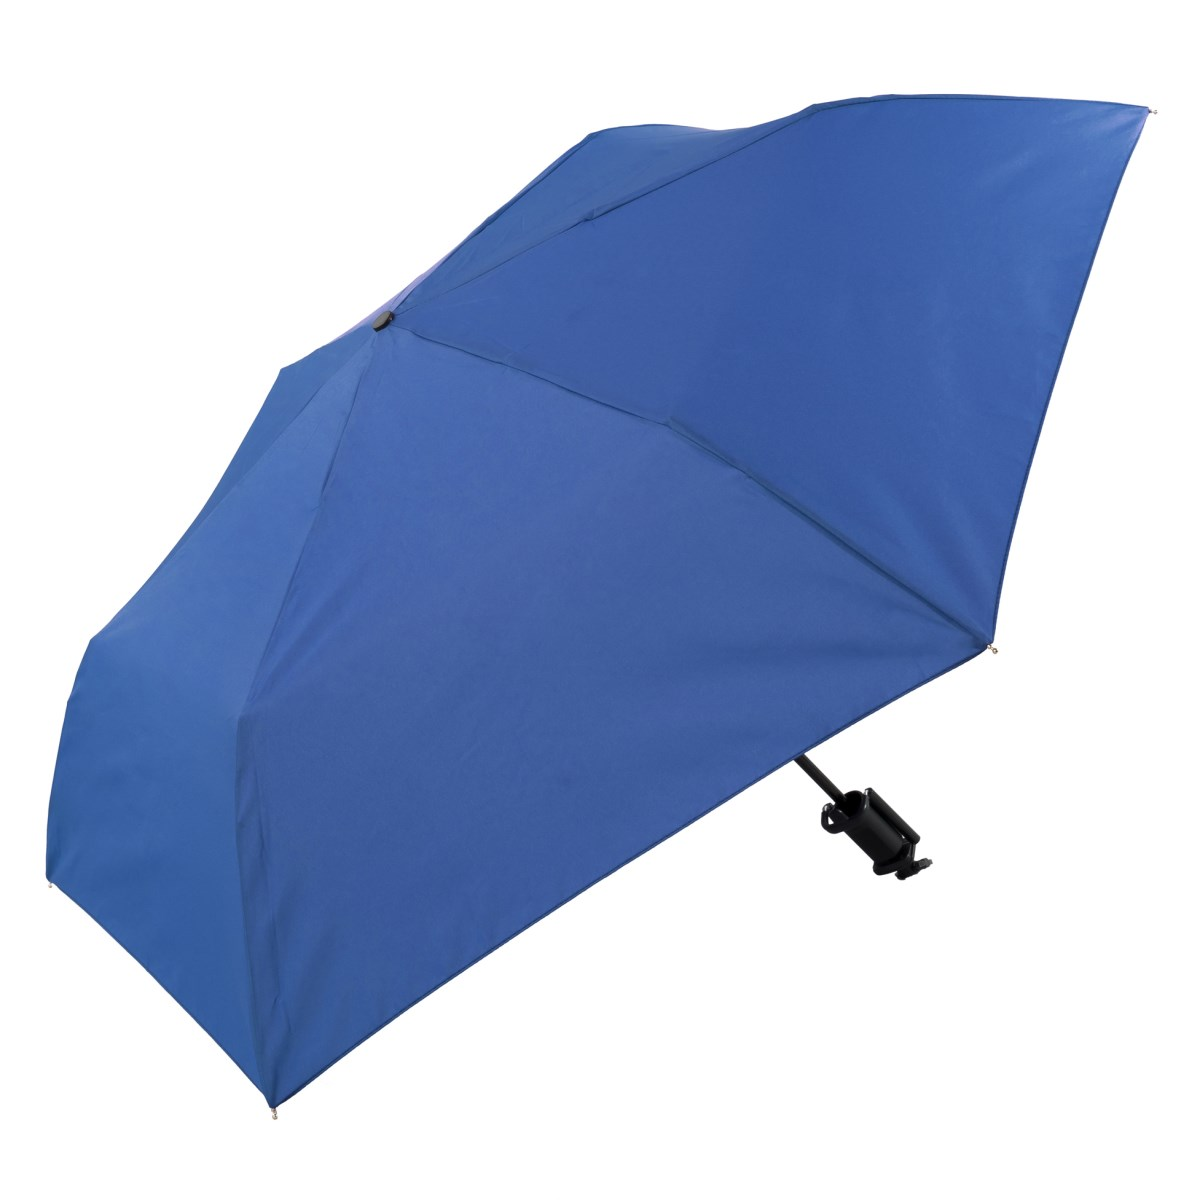 Novelty Blue Selfie Stick Compact Umbrella (31705)